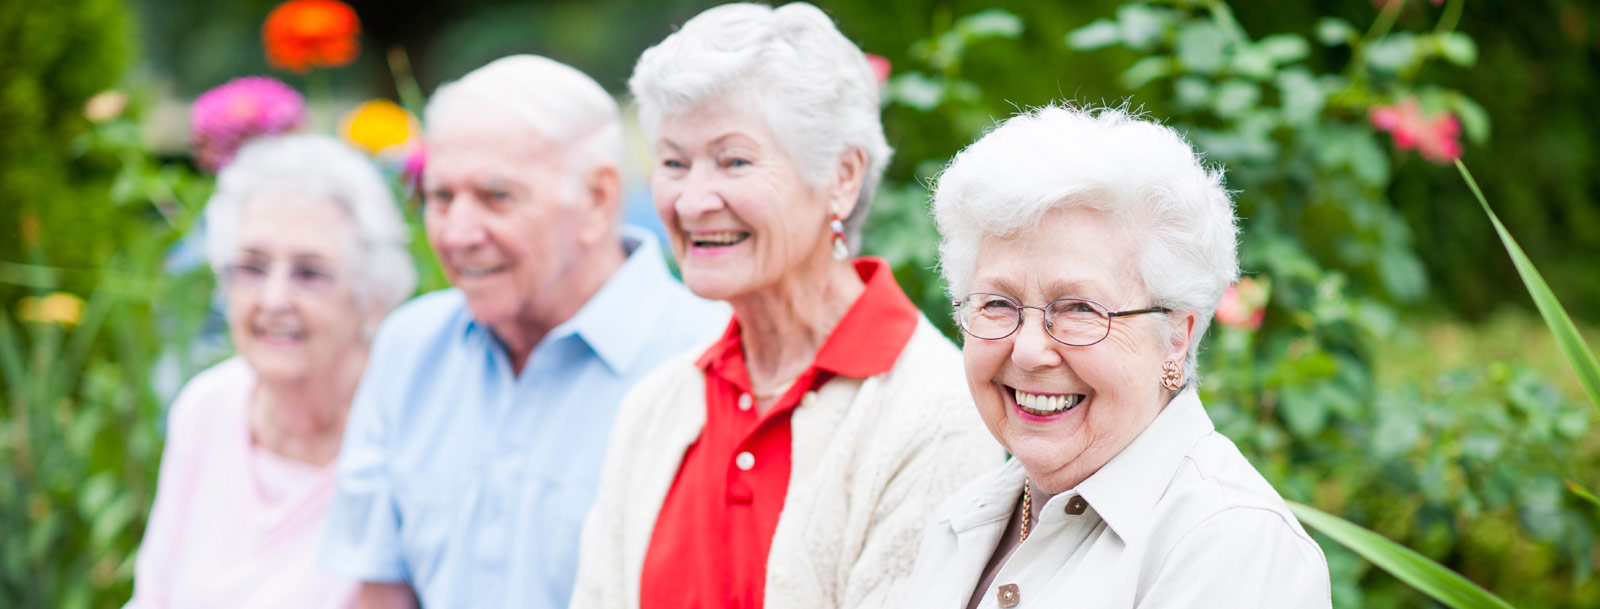 View our newsletter at the senior living in Wichita